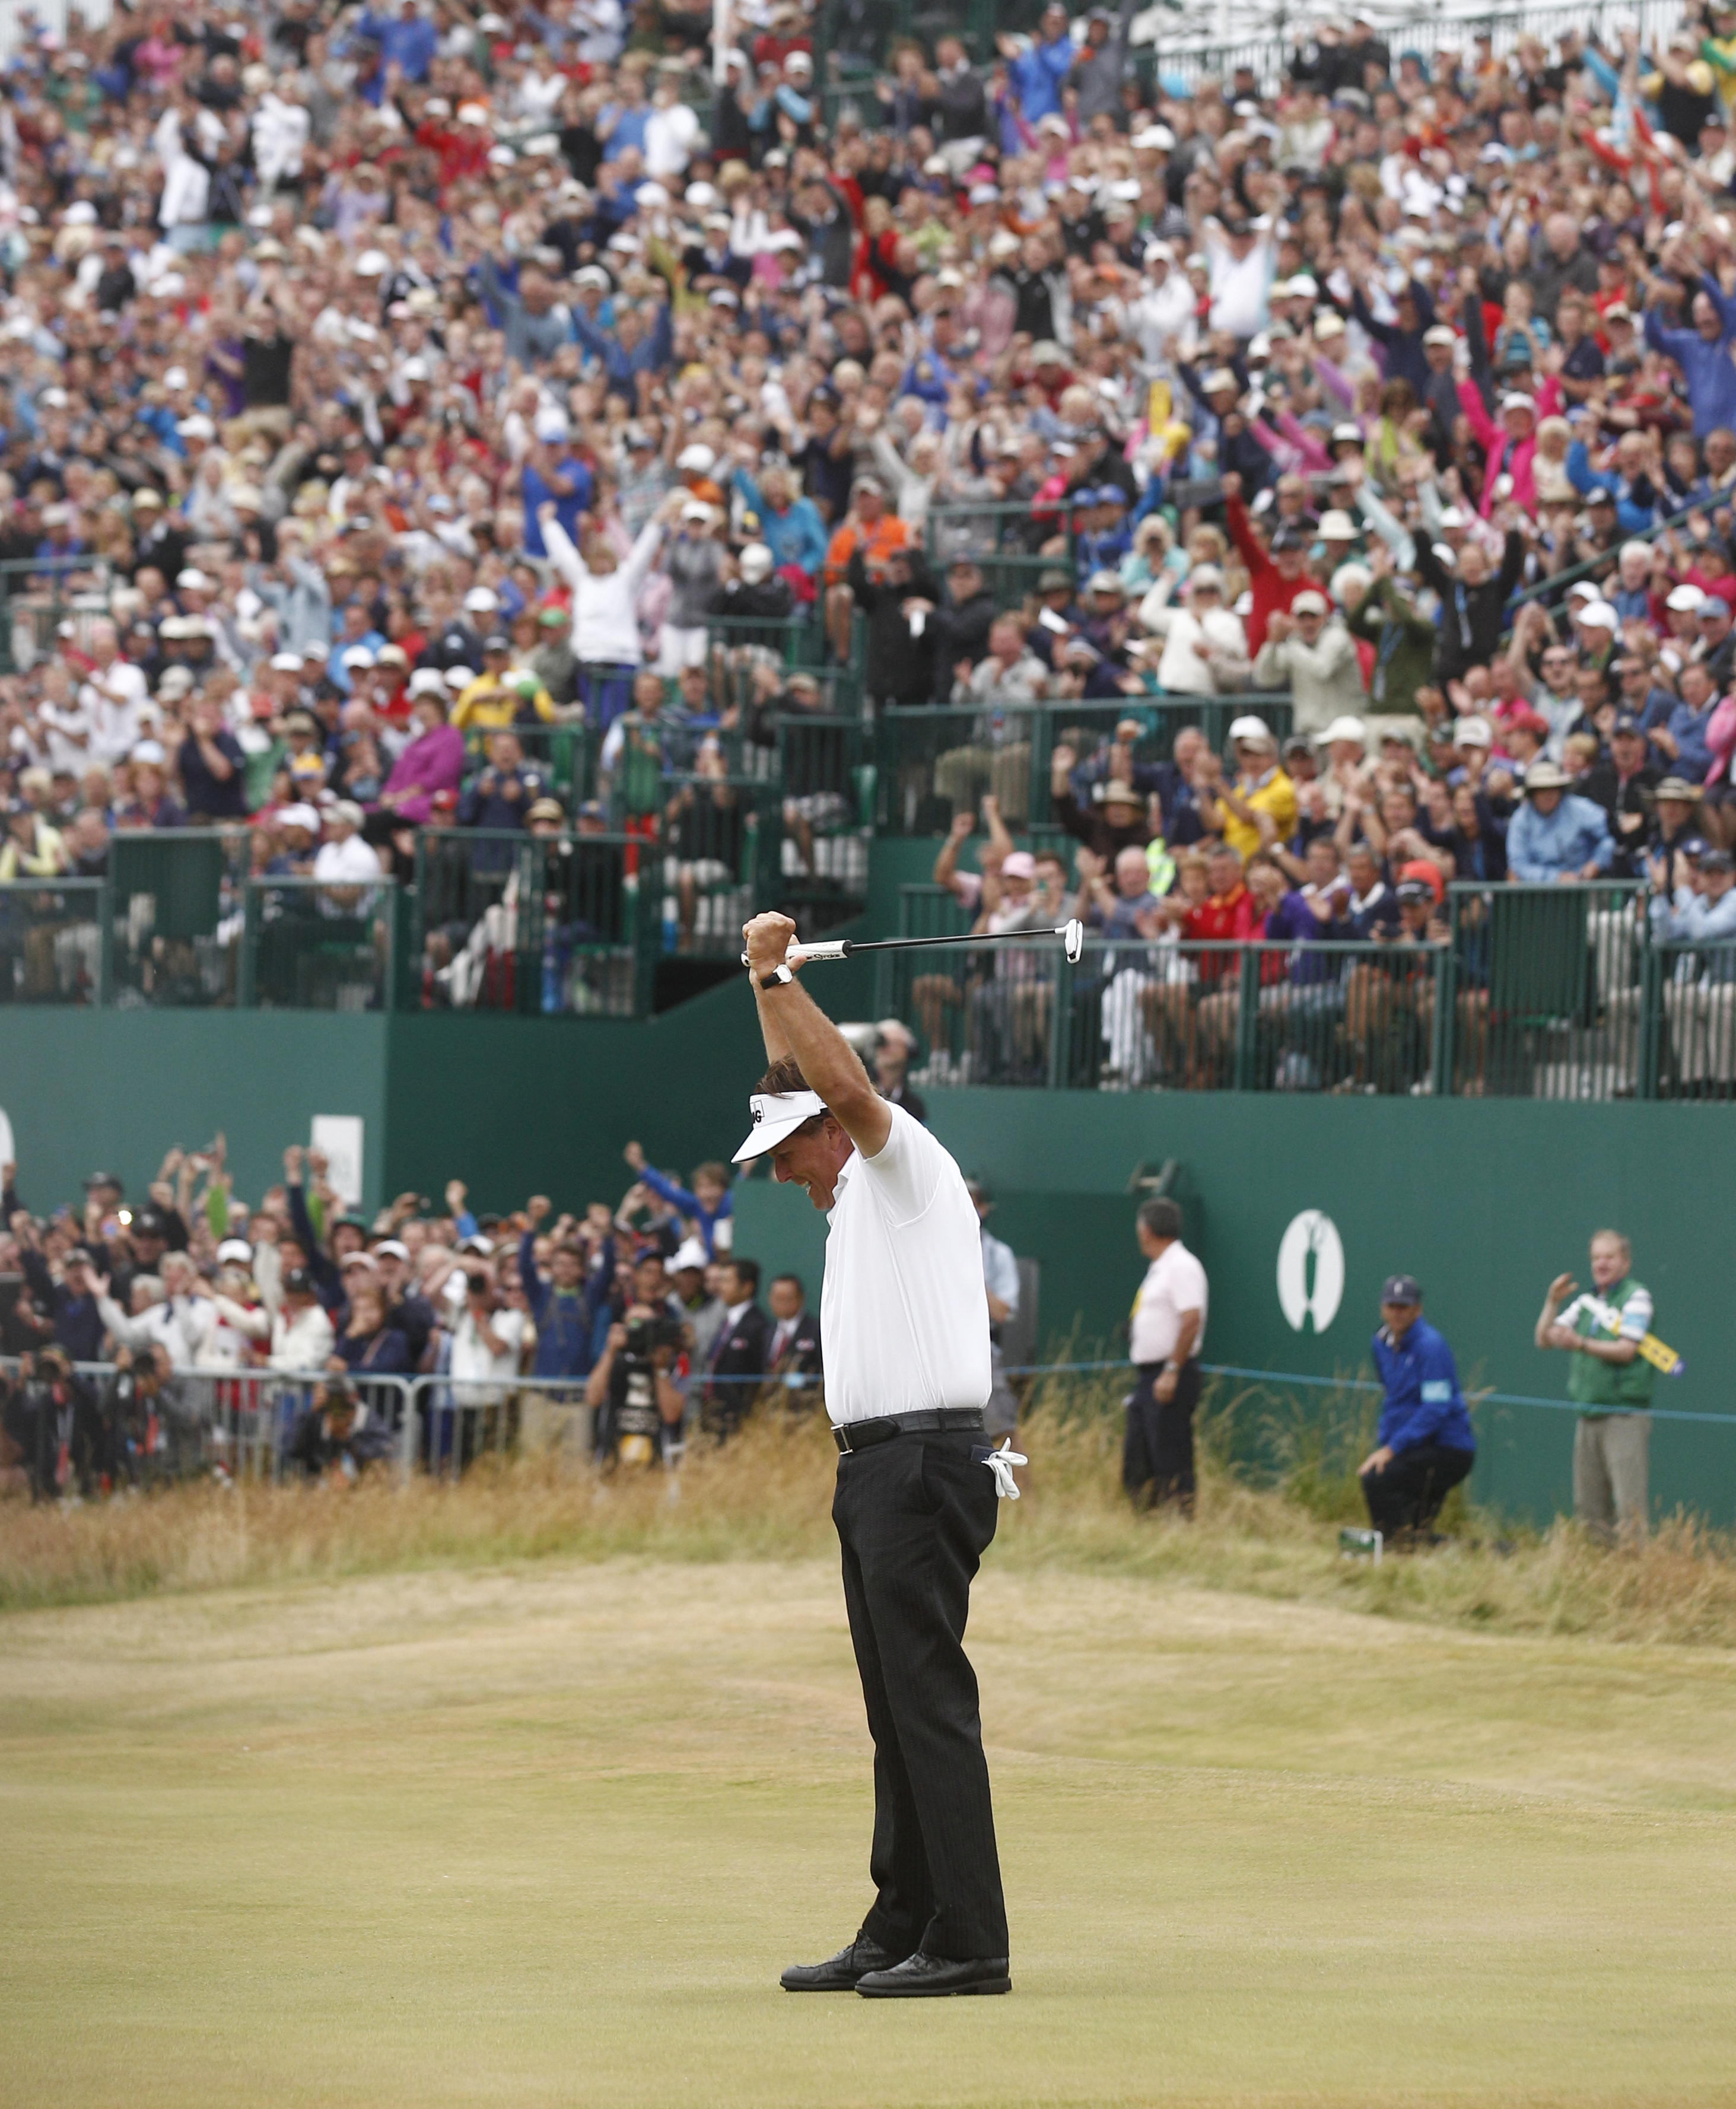 phil mickelson wins british open for fifth major golf